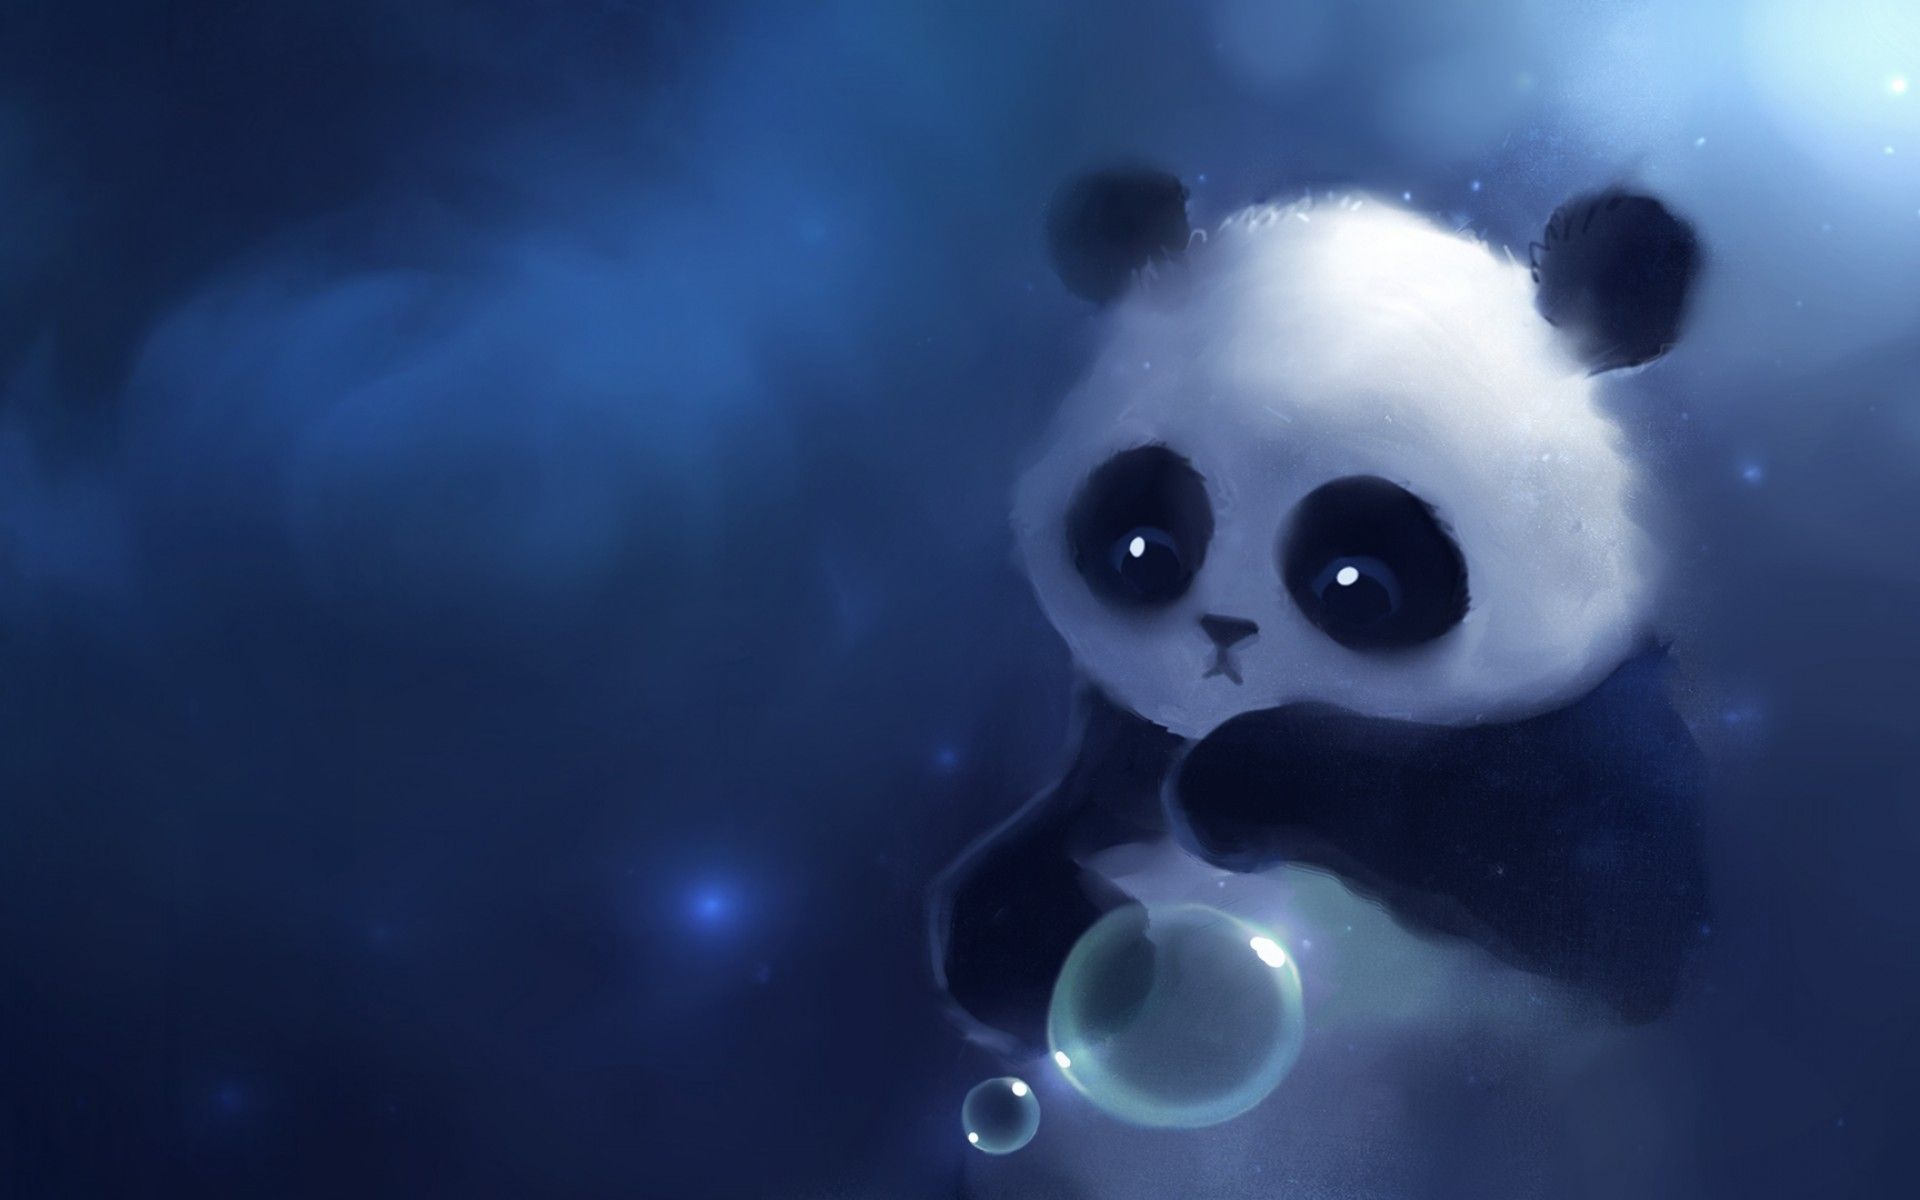 Funny Animal Desktop Backgrounds Walpaper Funny Fantasy Animals Paper Wallpapers Funny Hd Wallpaper Panda Art Panda Wallpapers Cute Wallpaper Backgrounds